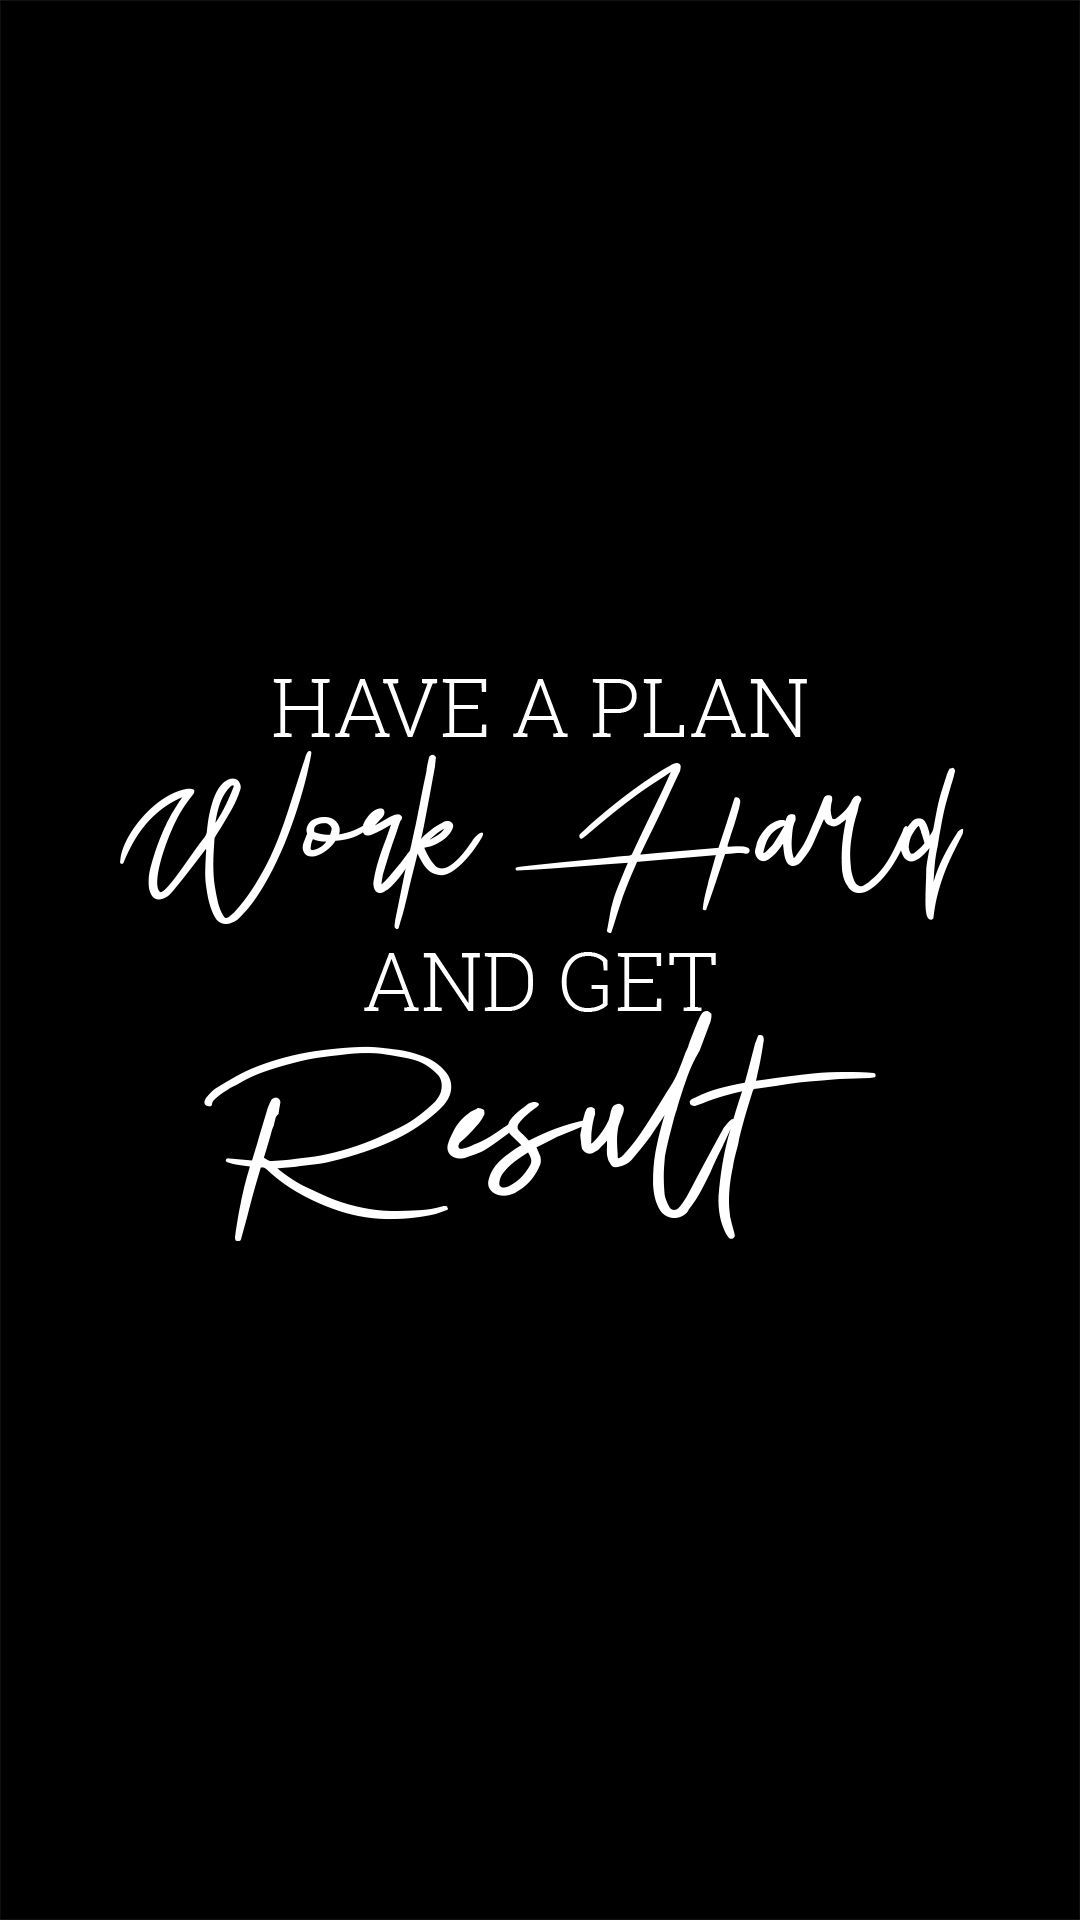 Quotes Sayings Inspiration Motivation Girl Bosses Working Moms Mom Bloggers Ins Business Inspiration Quotes Inspirational Quotes Wallpapers Queen Quotes